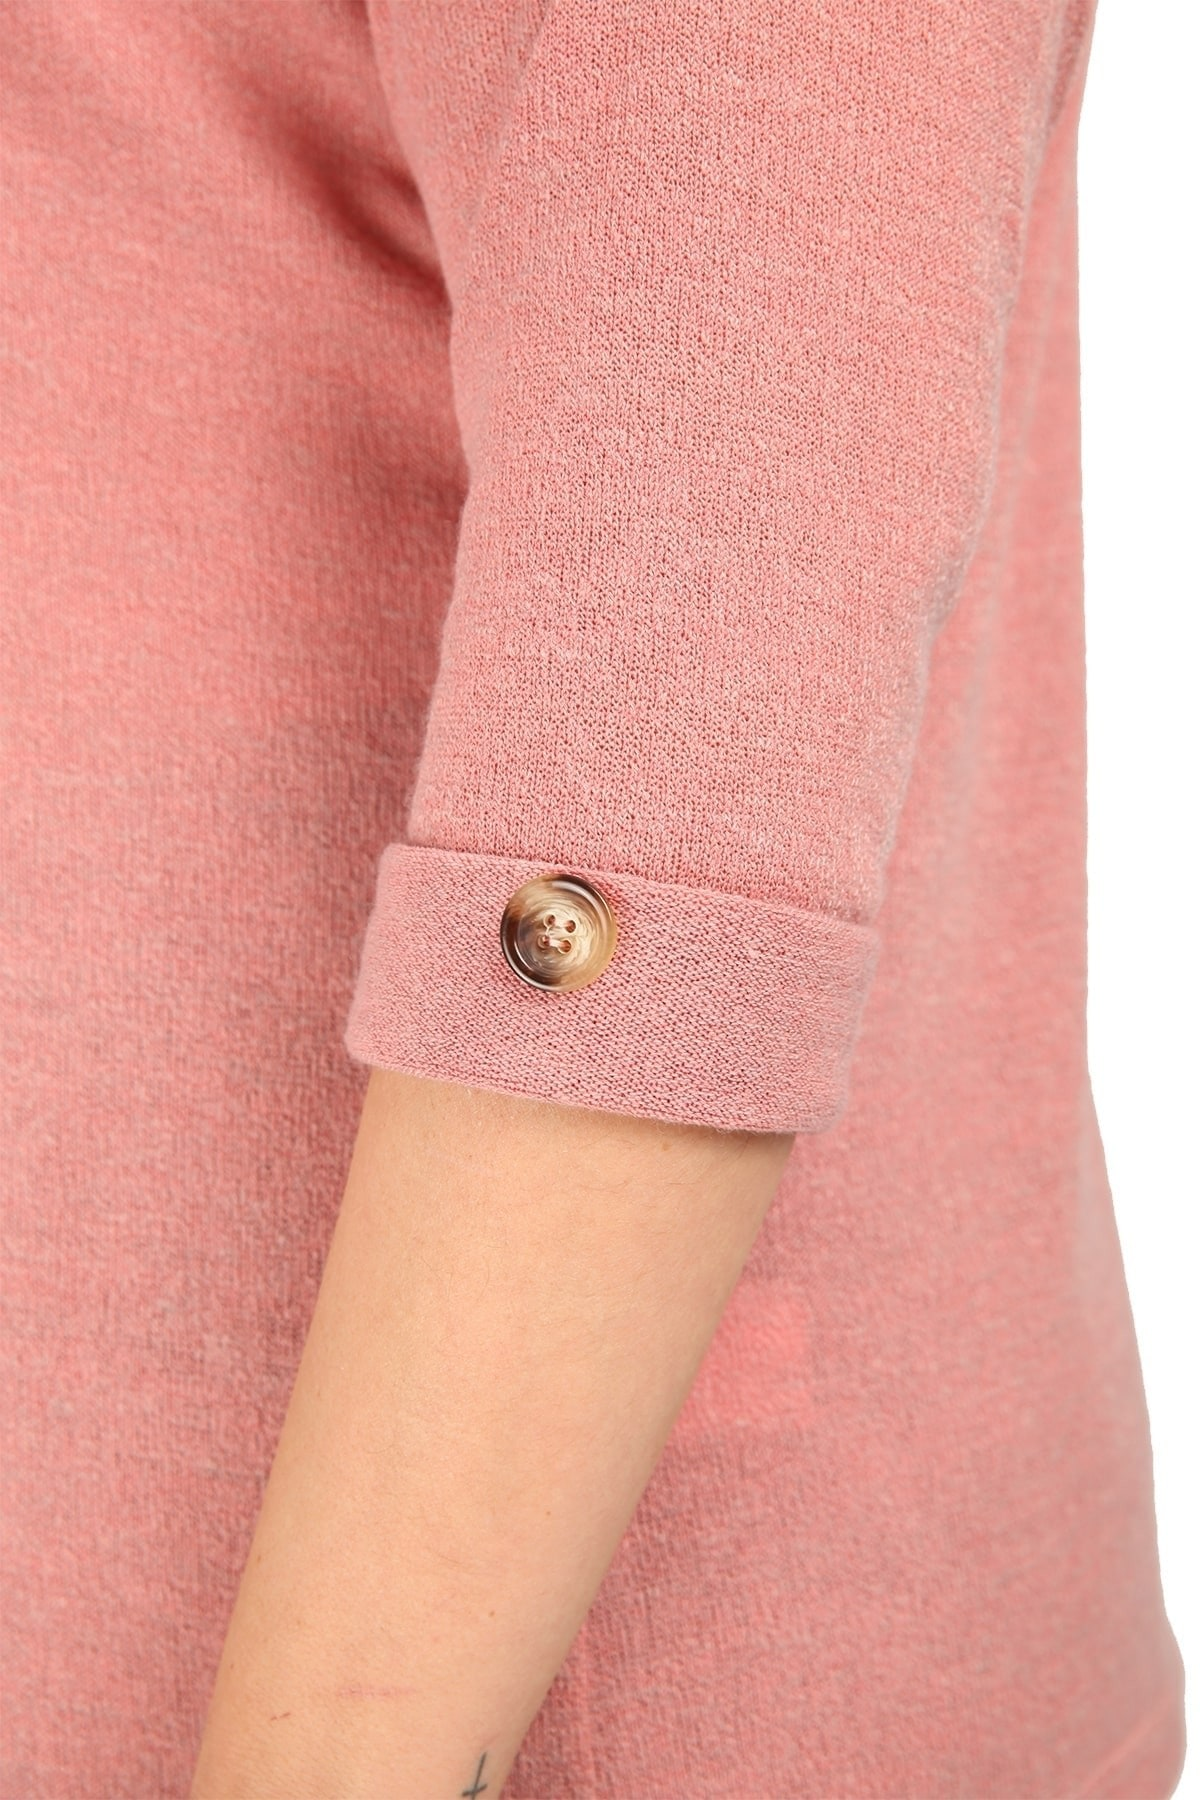 Knit blouse and cuffs with button